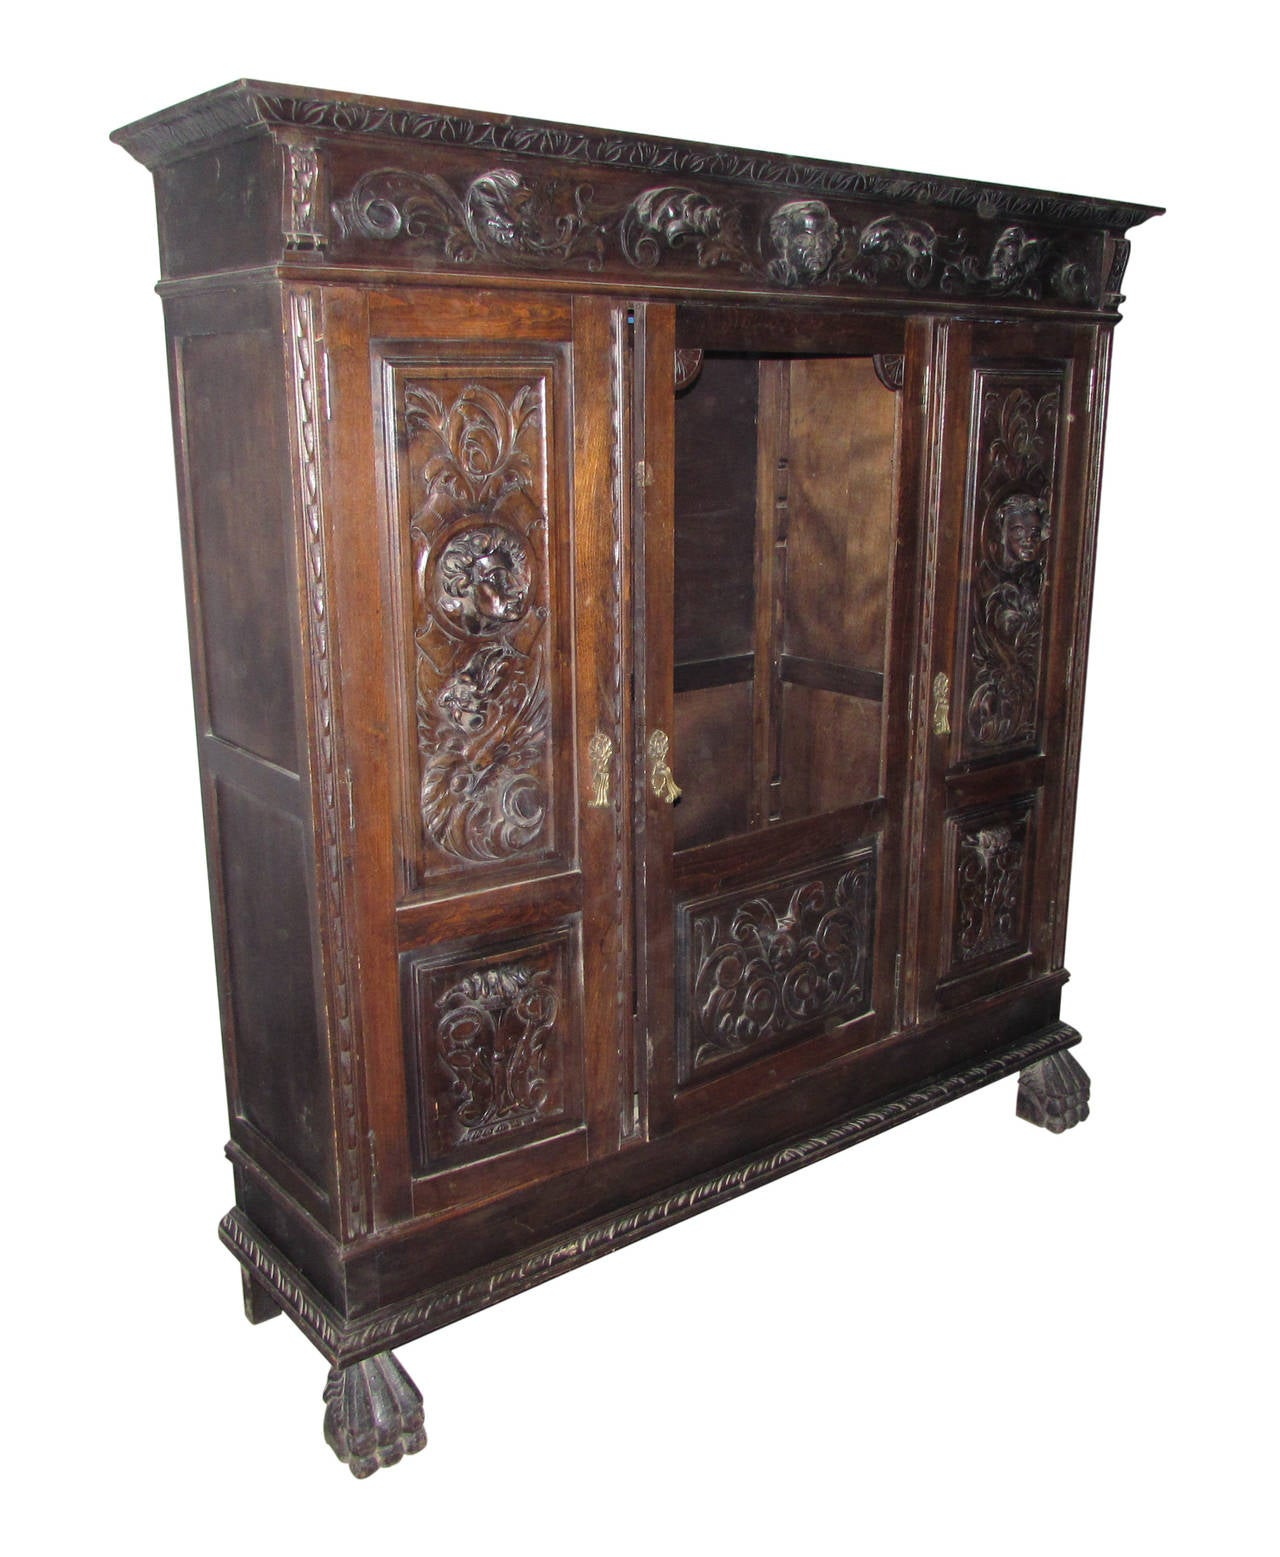 1880s Hand Carved Figural Cabinet With Claw Feet Faces And Interior Light For Sale At 1stdibs